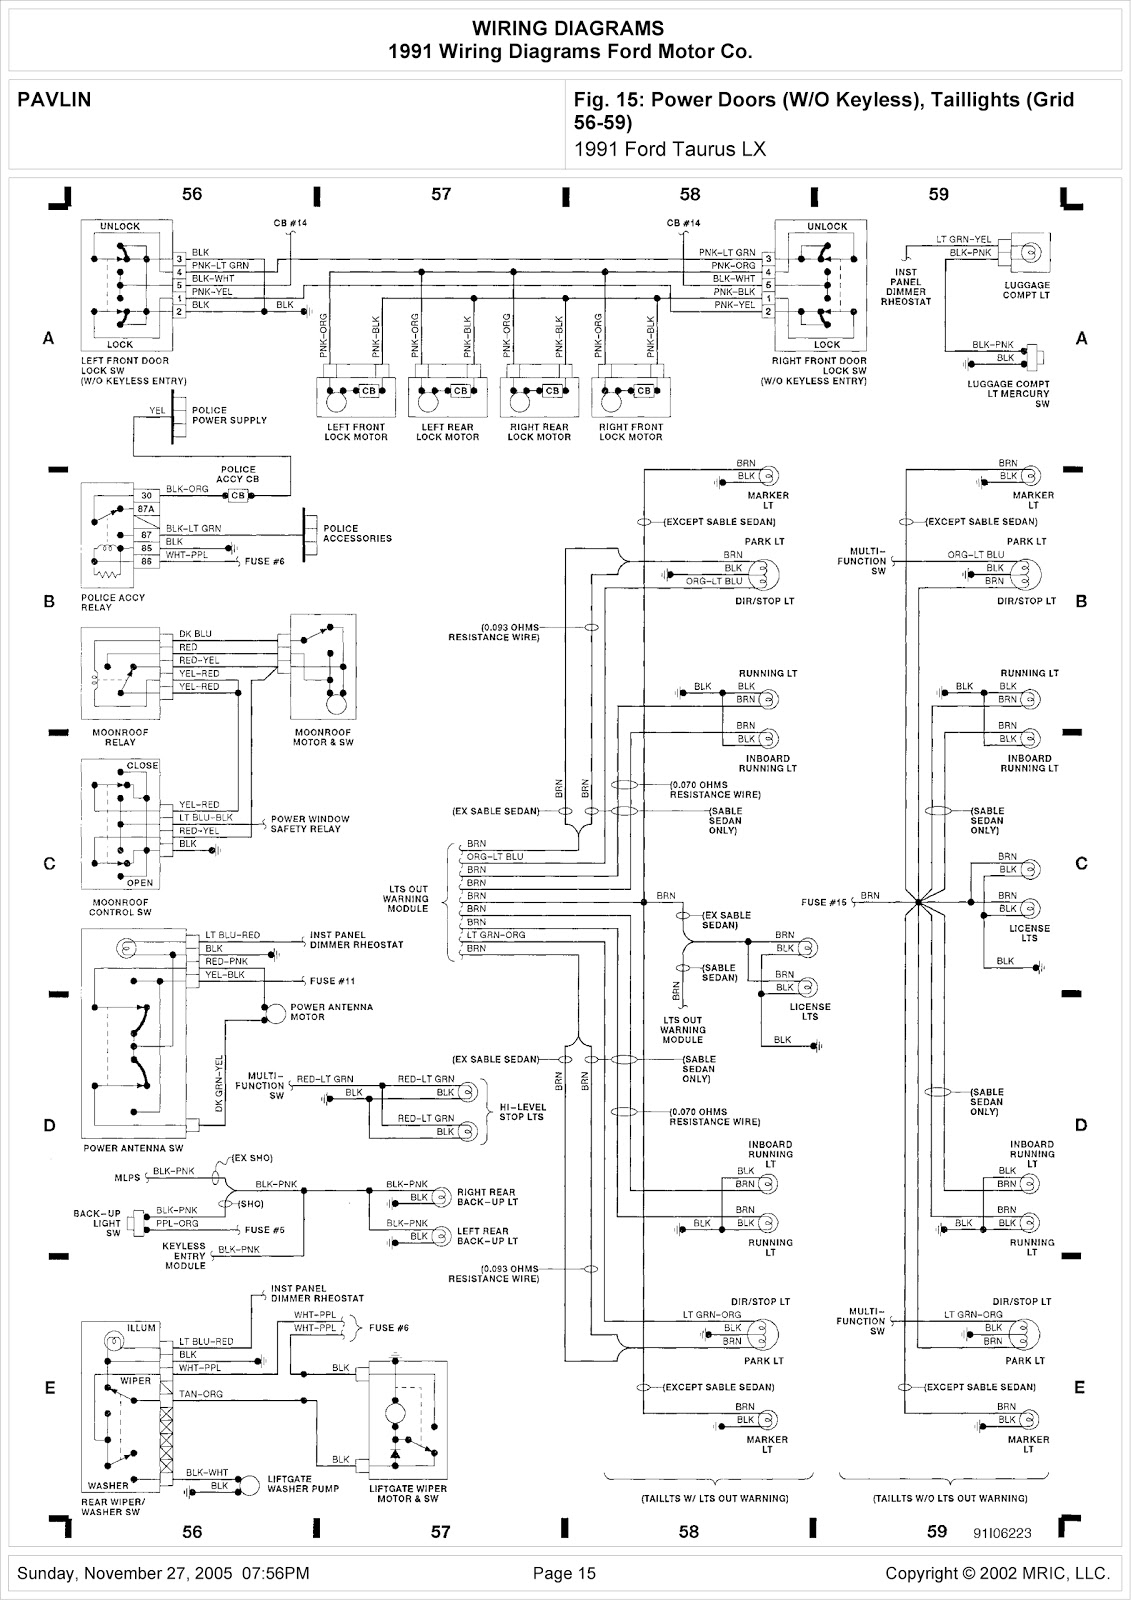 2001 ford taurus stereo wiring diagram marley electric baseboard heater search results need on harness for 2002